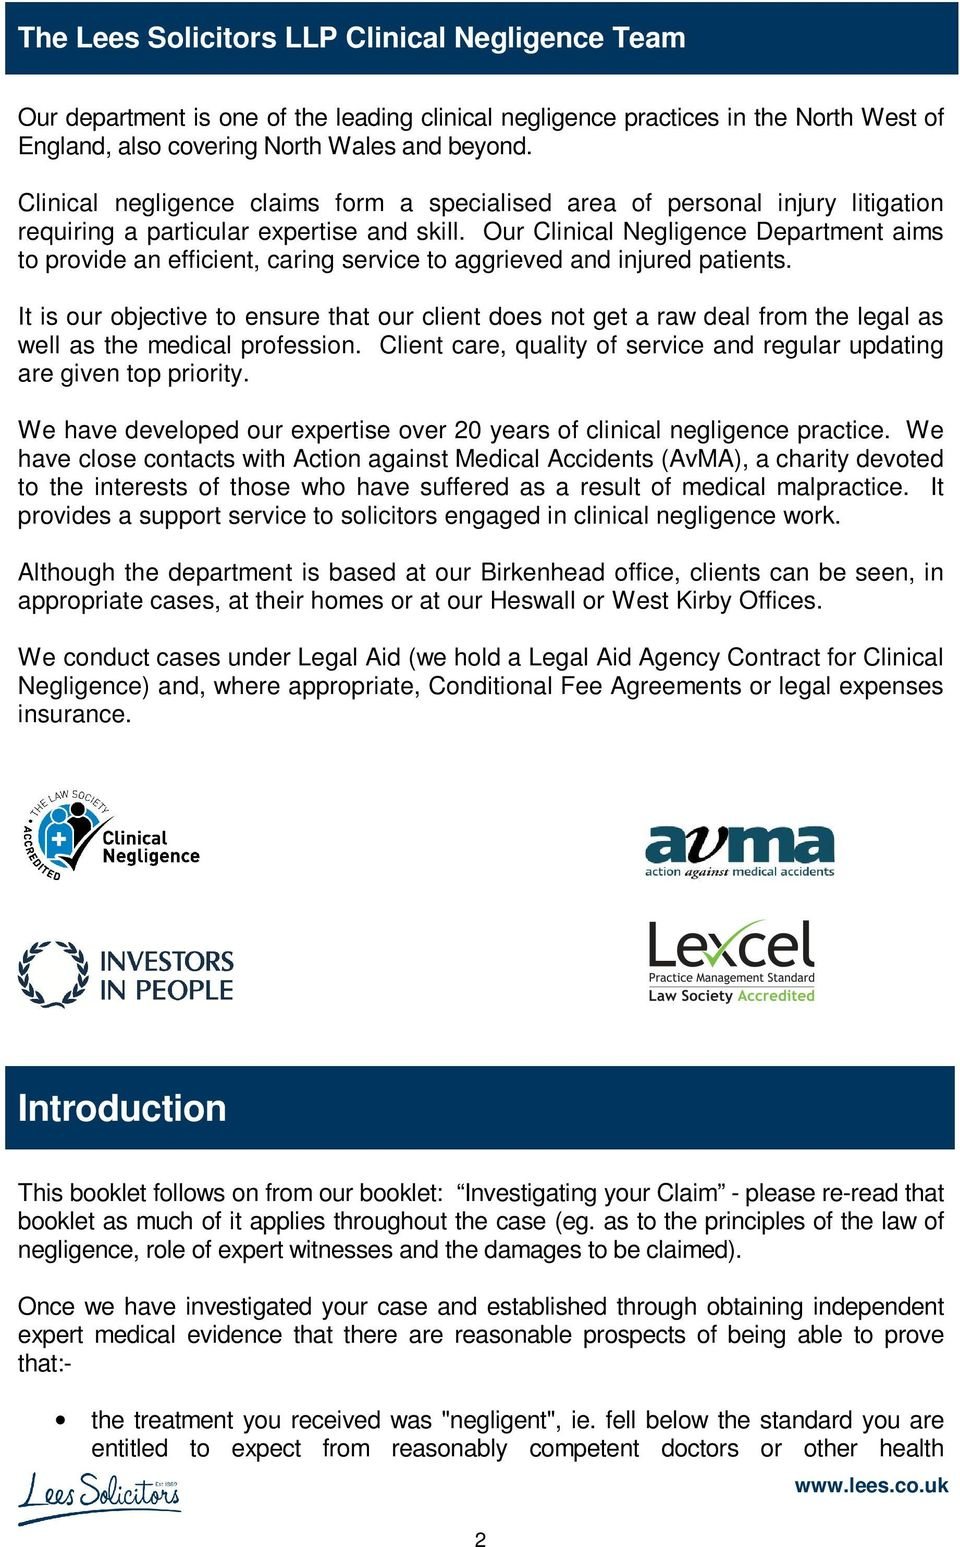 Our Clinical Negligence Department aims to provide an efficient, caring service to aggrieved and injured patients.